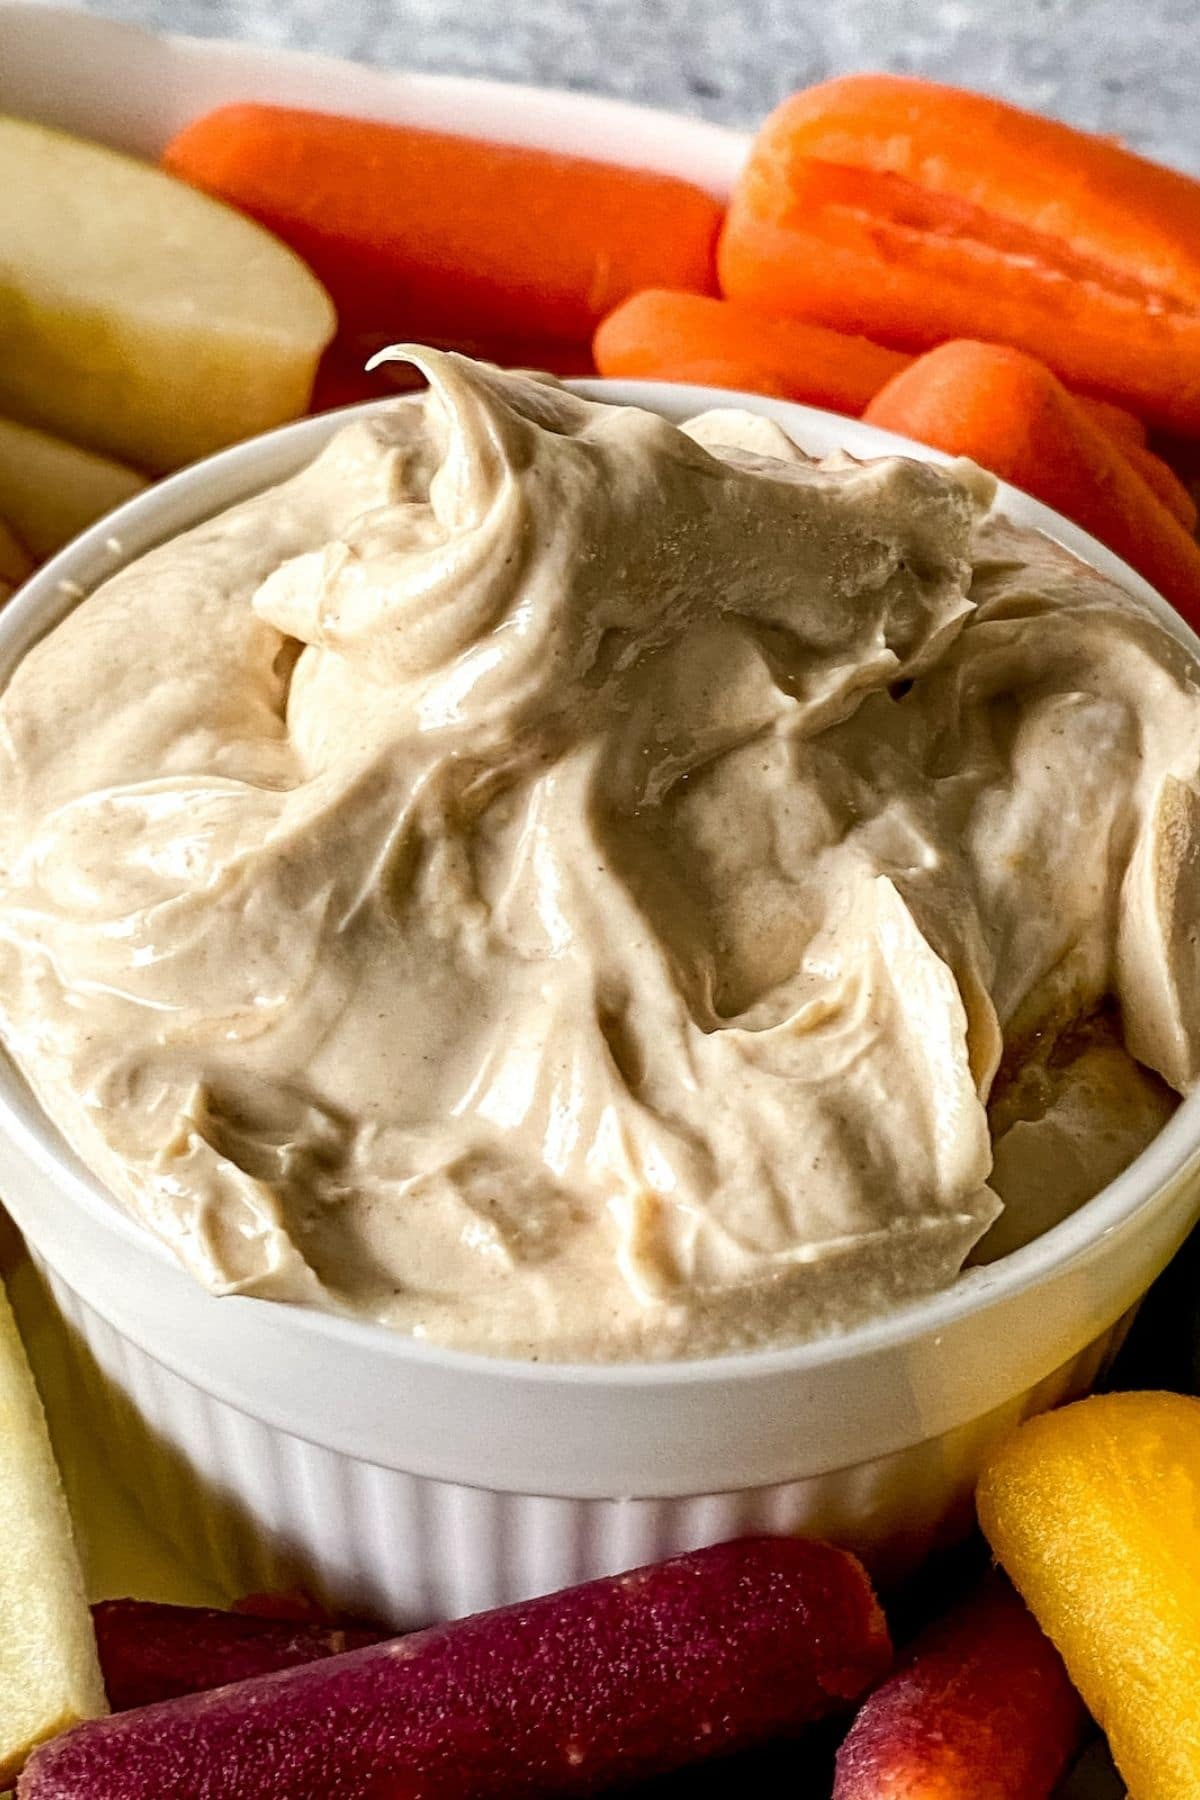 White ramekin filled with nut butter dip by carrots and apples